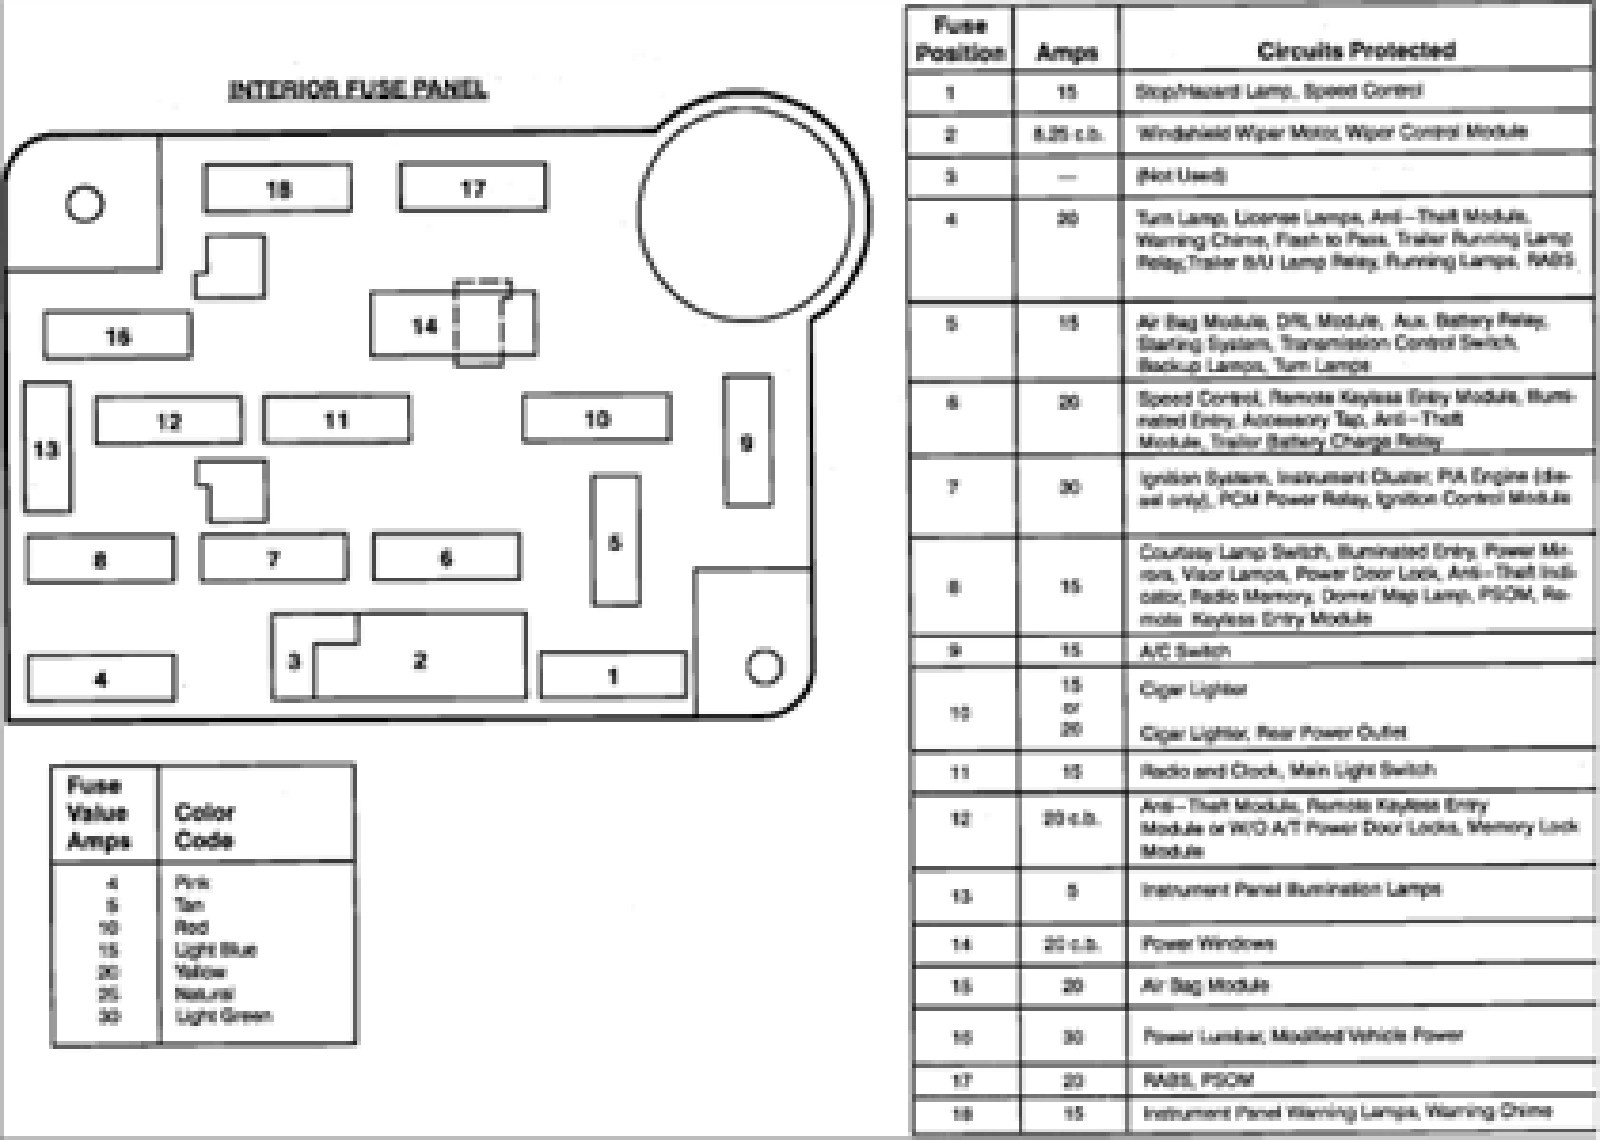 hight resolution of 1997 ford f150 fuse panel diagram wiring diagram blogs 1999 f250 super duty fuse diagram 98 ford f250 fuse diagram